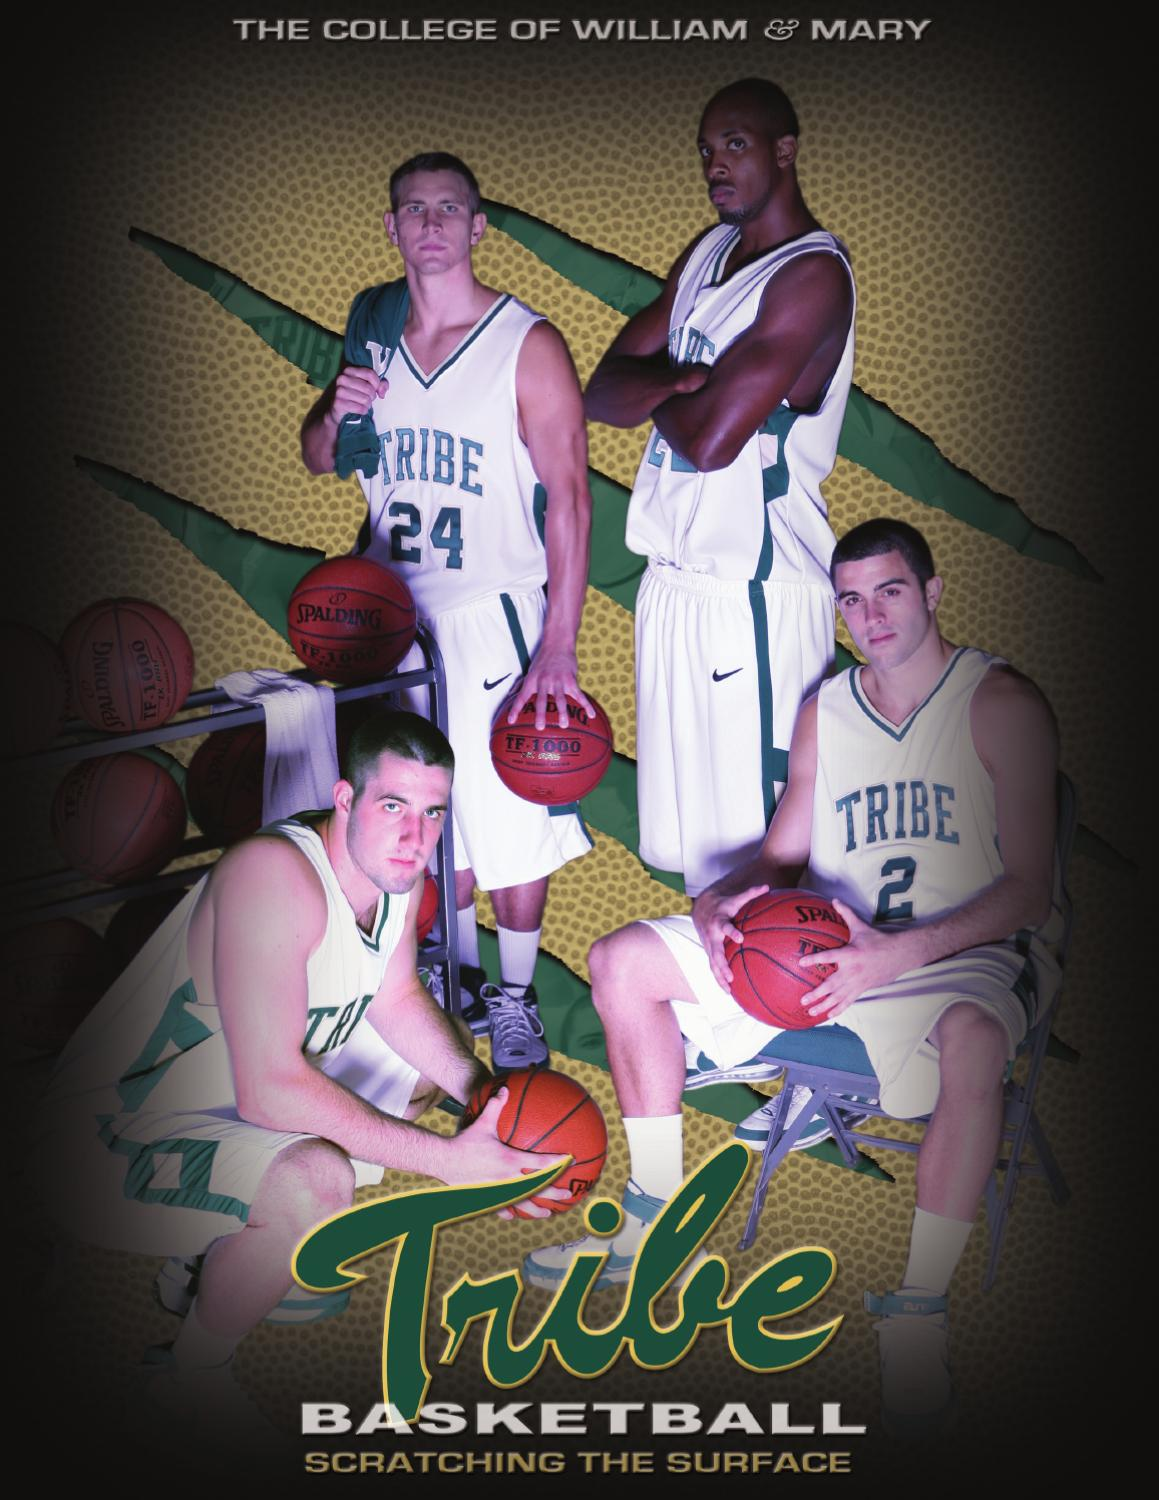 b9392799d040 2009-10 Tribe Men s Basketball Media Guide by College of William and Mary -  issuu